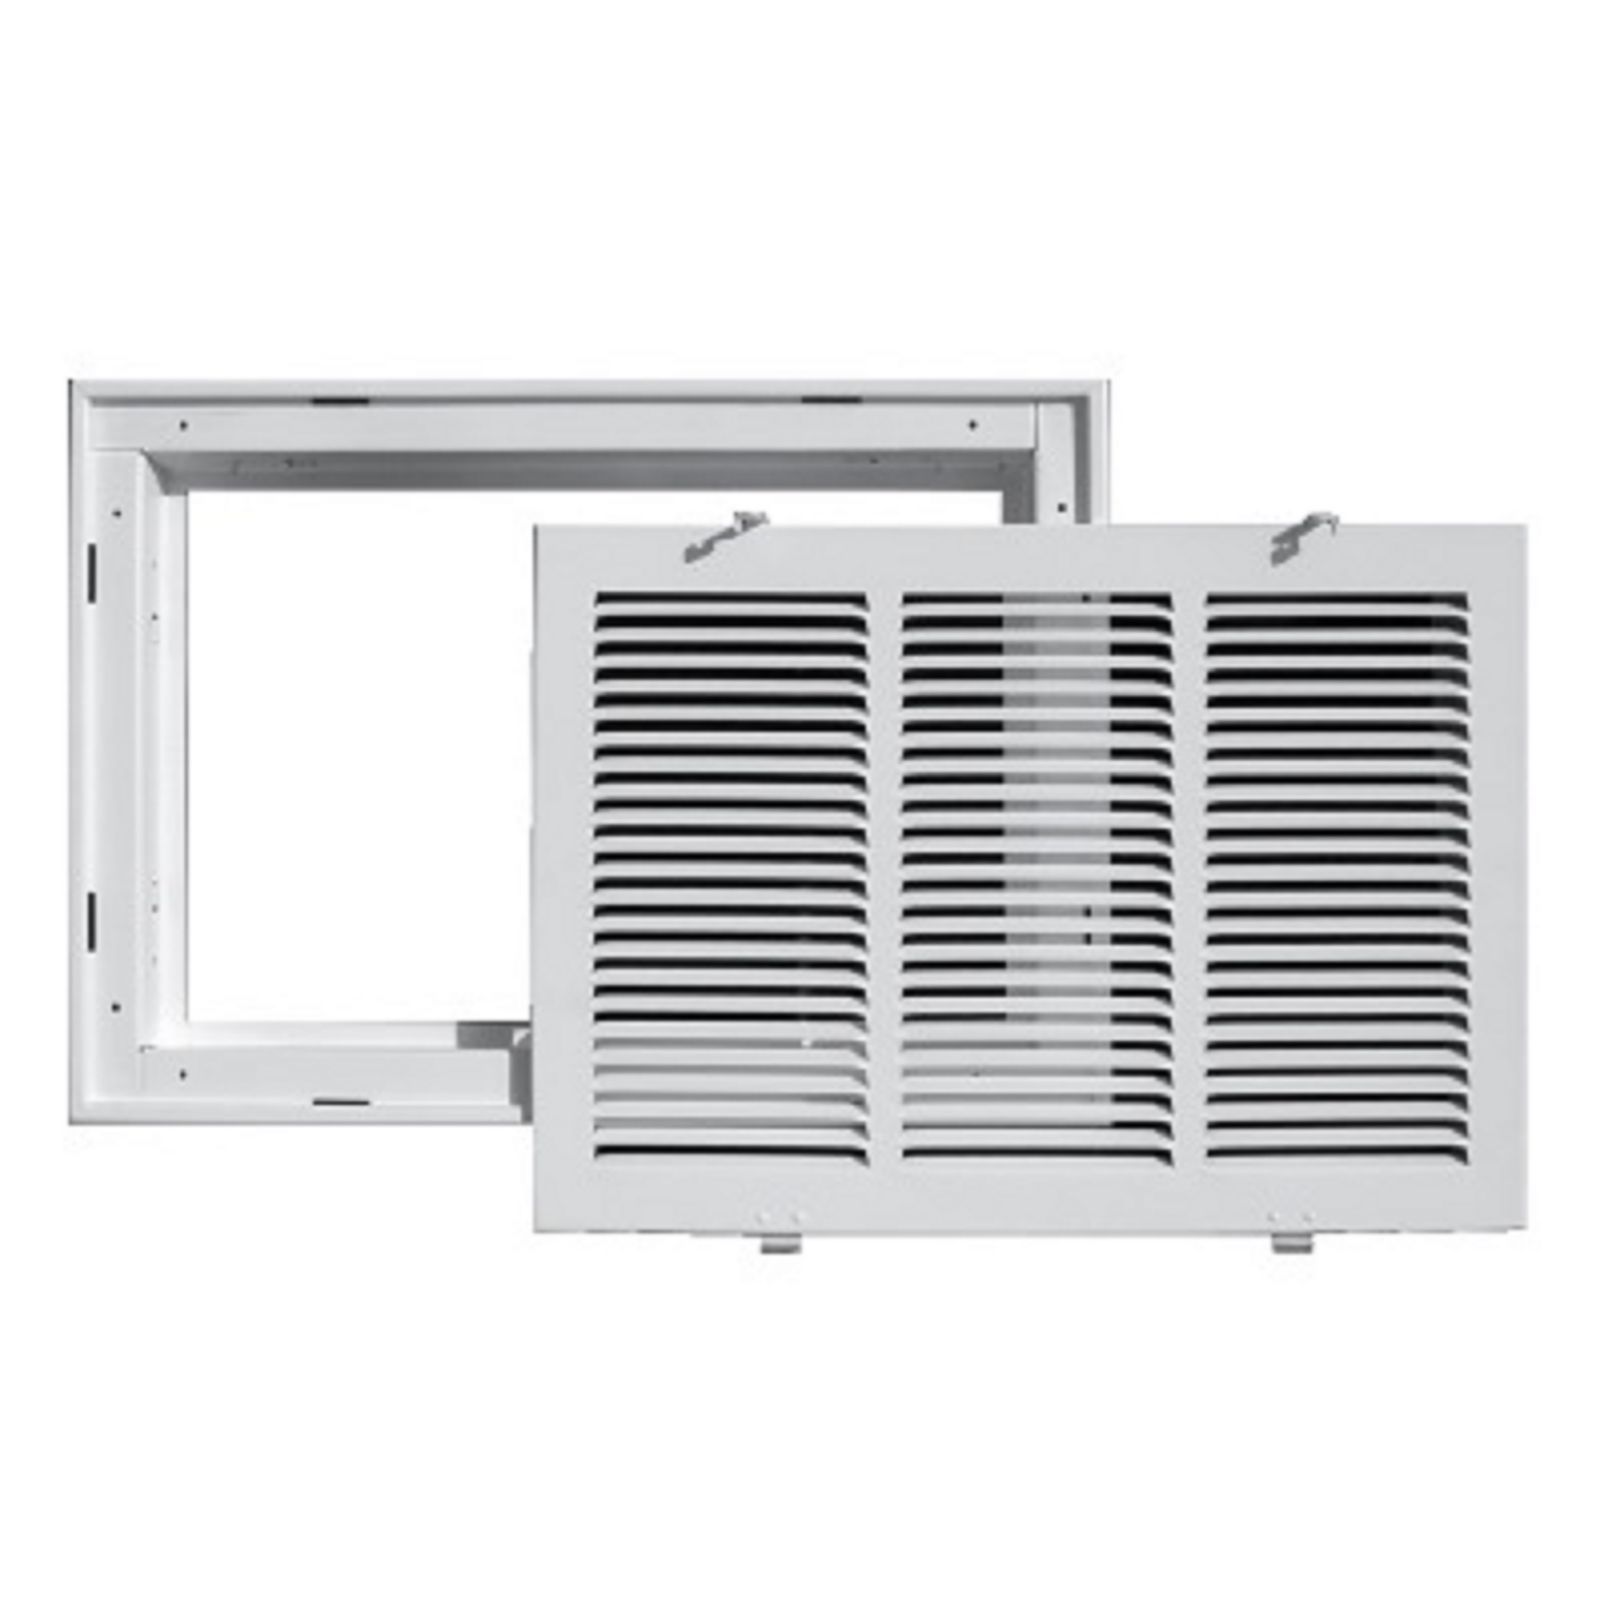 "TRUaire 190RF 14X20 - Steel Return Air Filter Grille With Removable Face, White, 14"" X 20"""